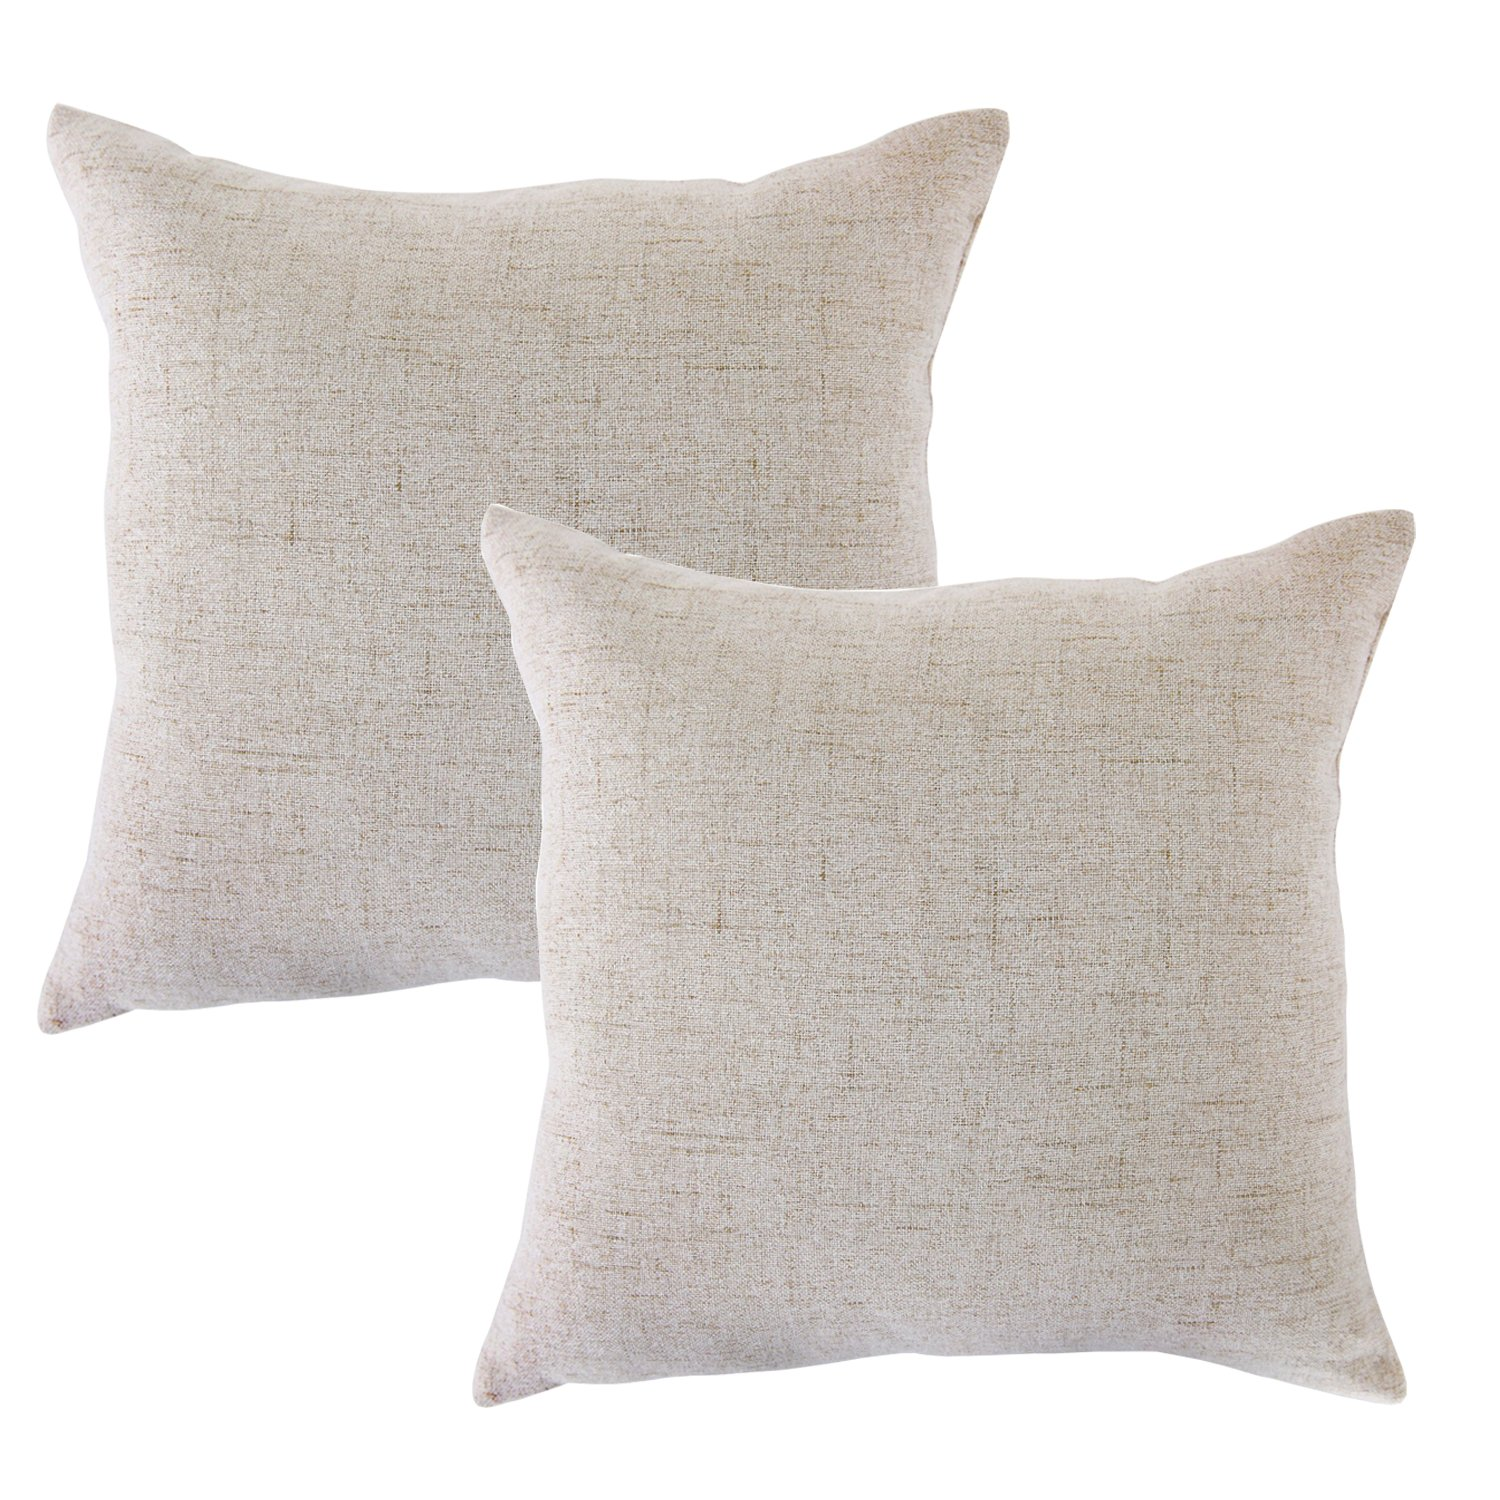 CHANODUG Linen Pillow Covers 20 x 20 Inch Sets of 2 French Gray Decorative Square Throw Pillow Cover Cushion Case Sofa Durable Modern Stylish Linen Throw Cushion Covers Hidden Zipper CASE-QH20